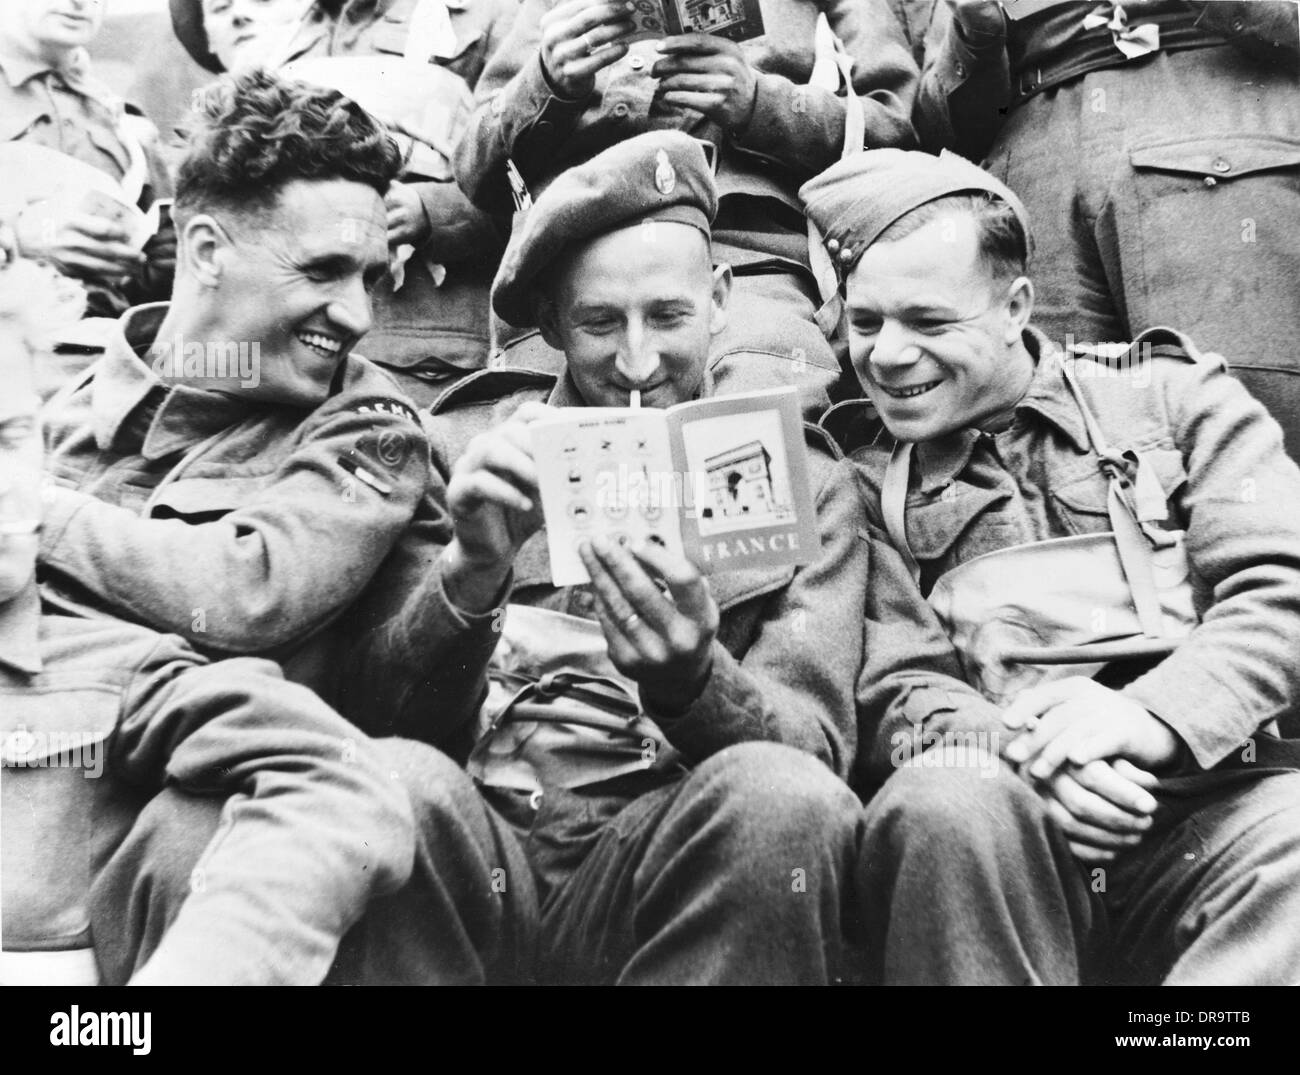 British troops reading French guide - Stock Image